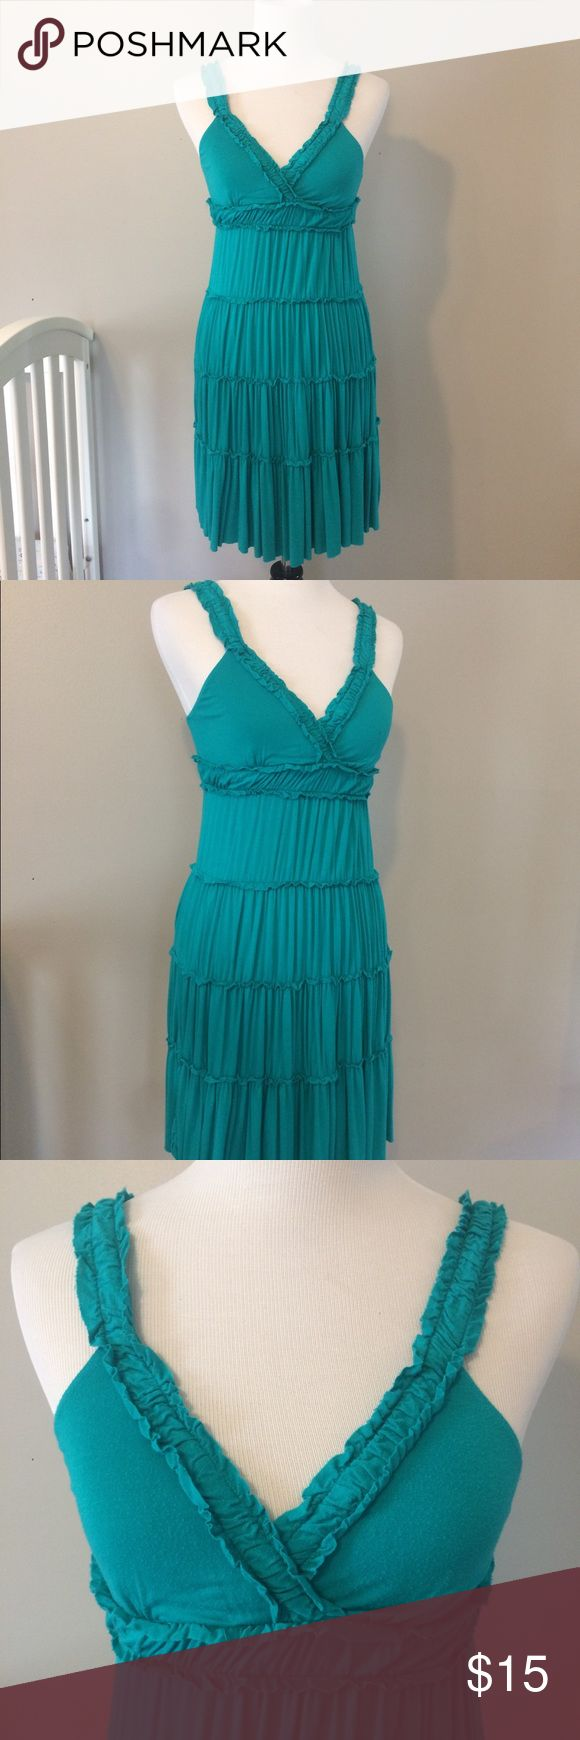 "MCM Turquoise Tiered Sun Dress with Ruffles From Dillard's, this dress is a bold teal/Turquoise color. It is light & flowy - comfortable & perfect for hot summer days! It's also a great swimsuit coverup. The material is rayon & spandex - it does have some pilling on parts of the dress (see photo). I'm 5'6"" & it hits just above the knee. MCM Dresses Midi"